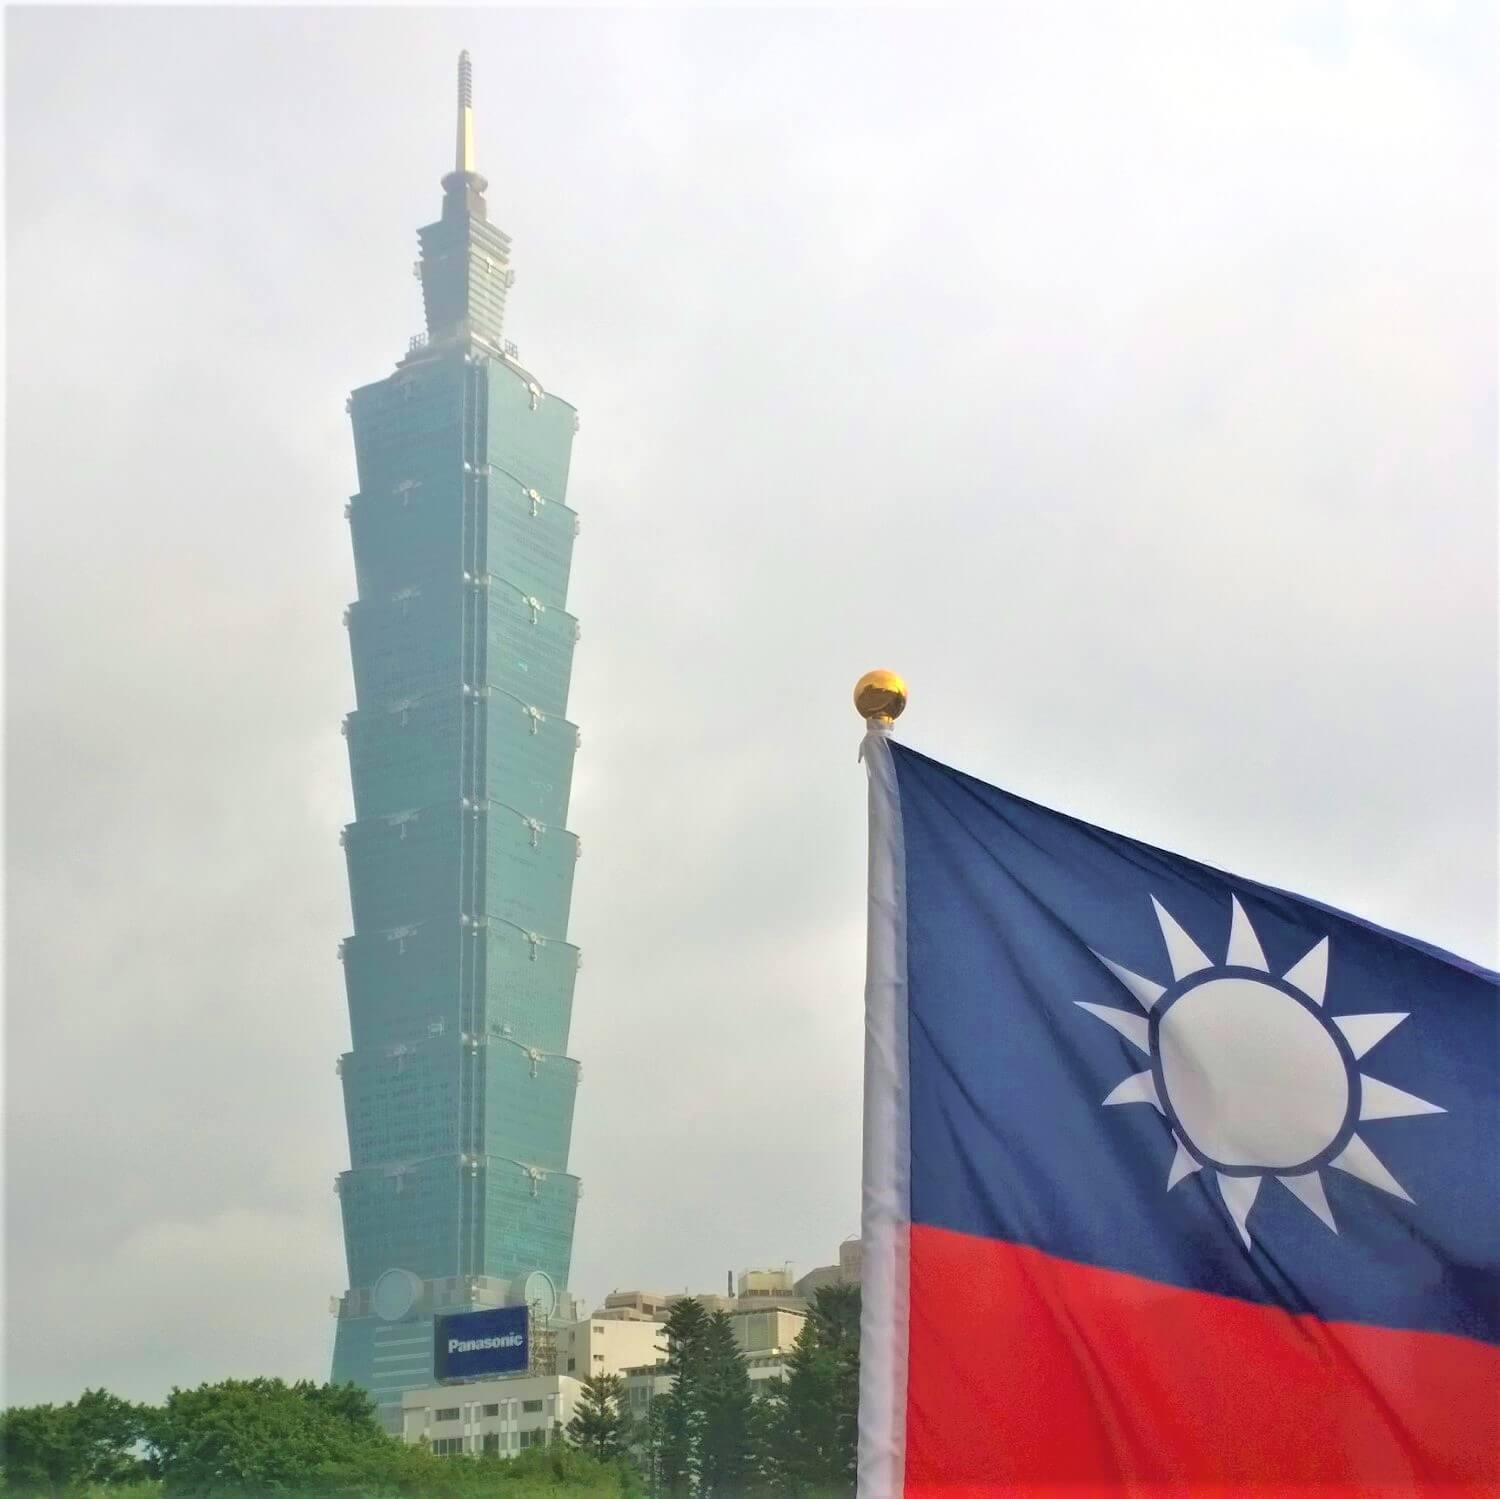 The flag of Taiwan and the Taipei 101